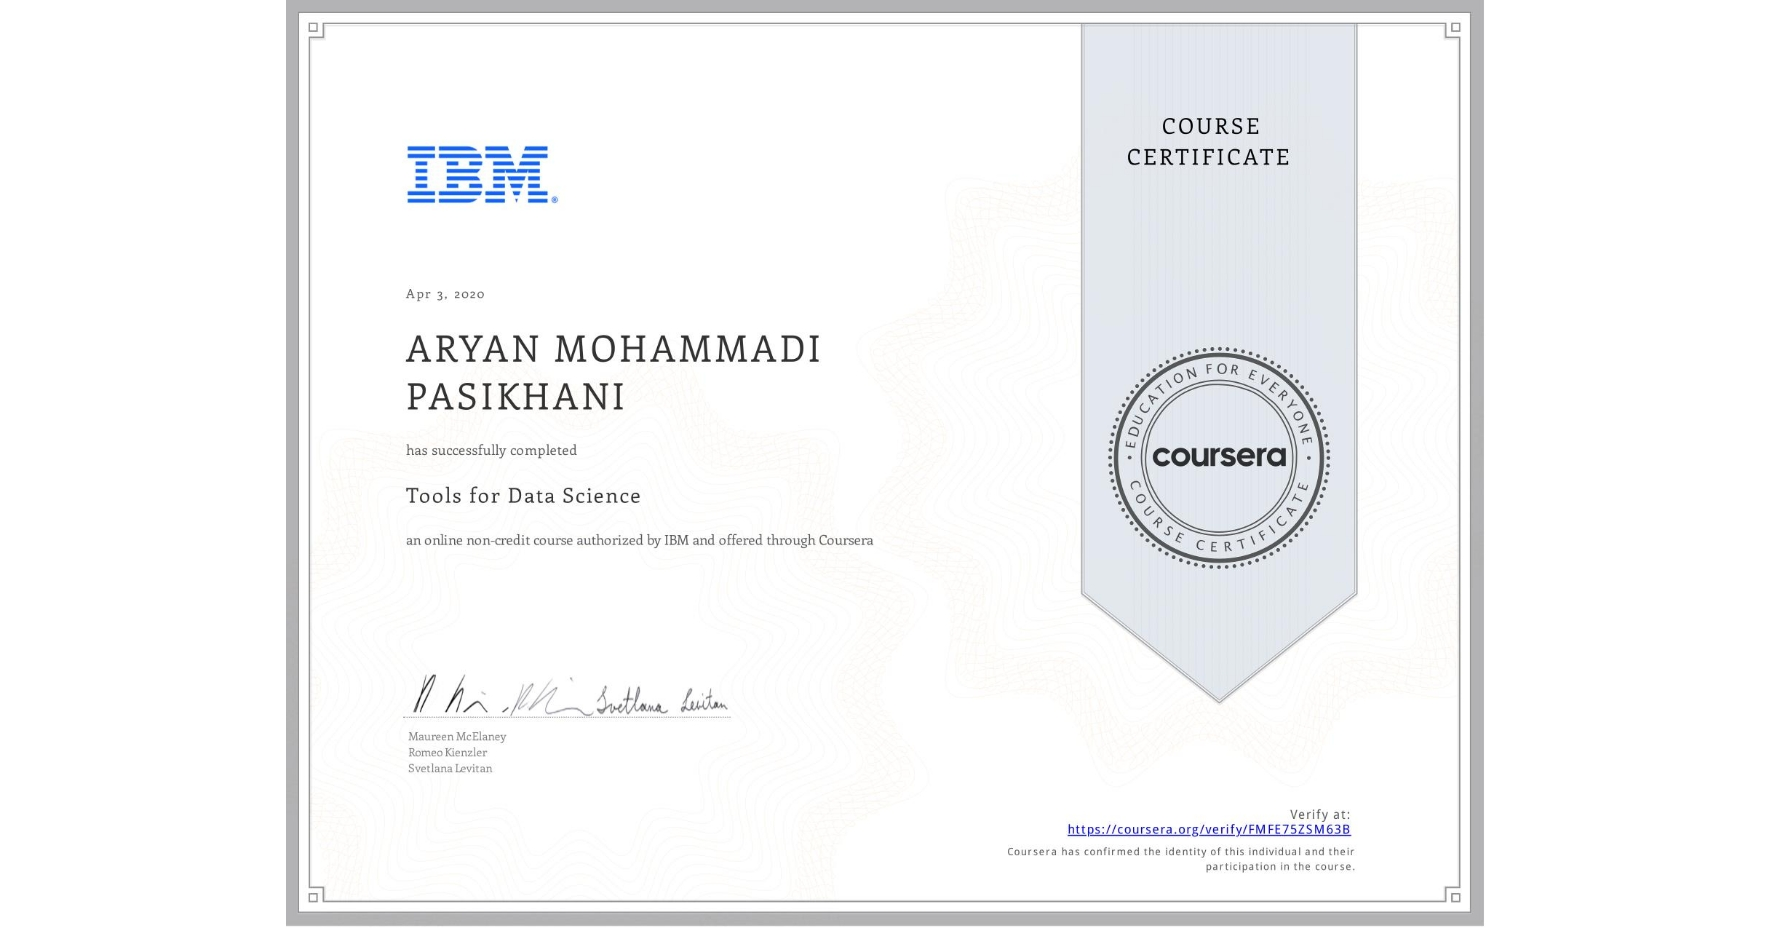 View certificate for ARYAN MOHAMMADI PASIKHANI, Tools for Data Science, an online non-credit course authorized by IBM and offered through Coursera